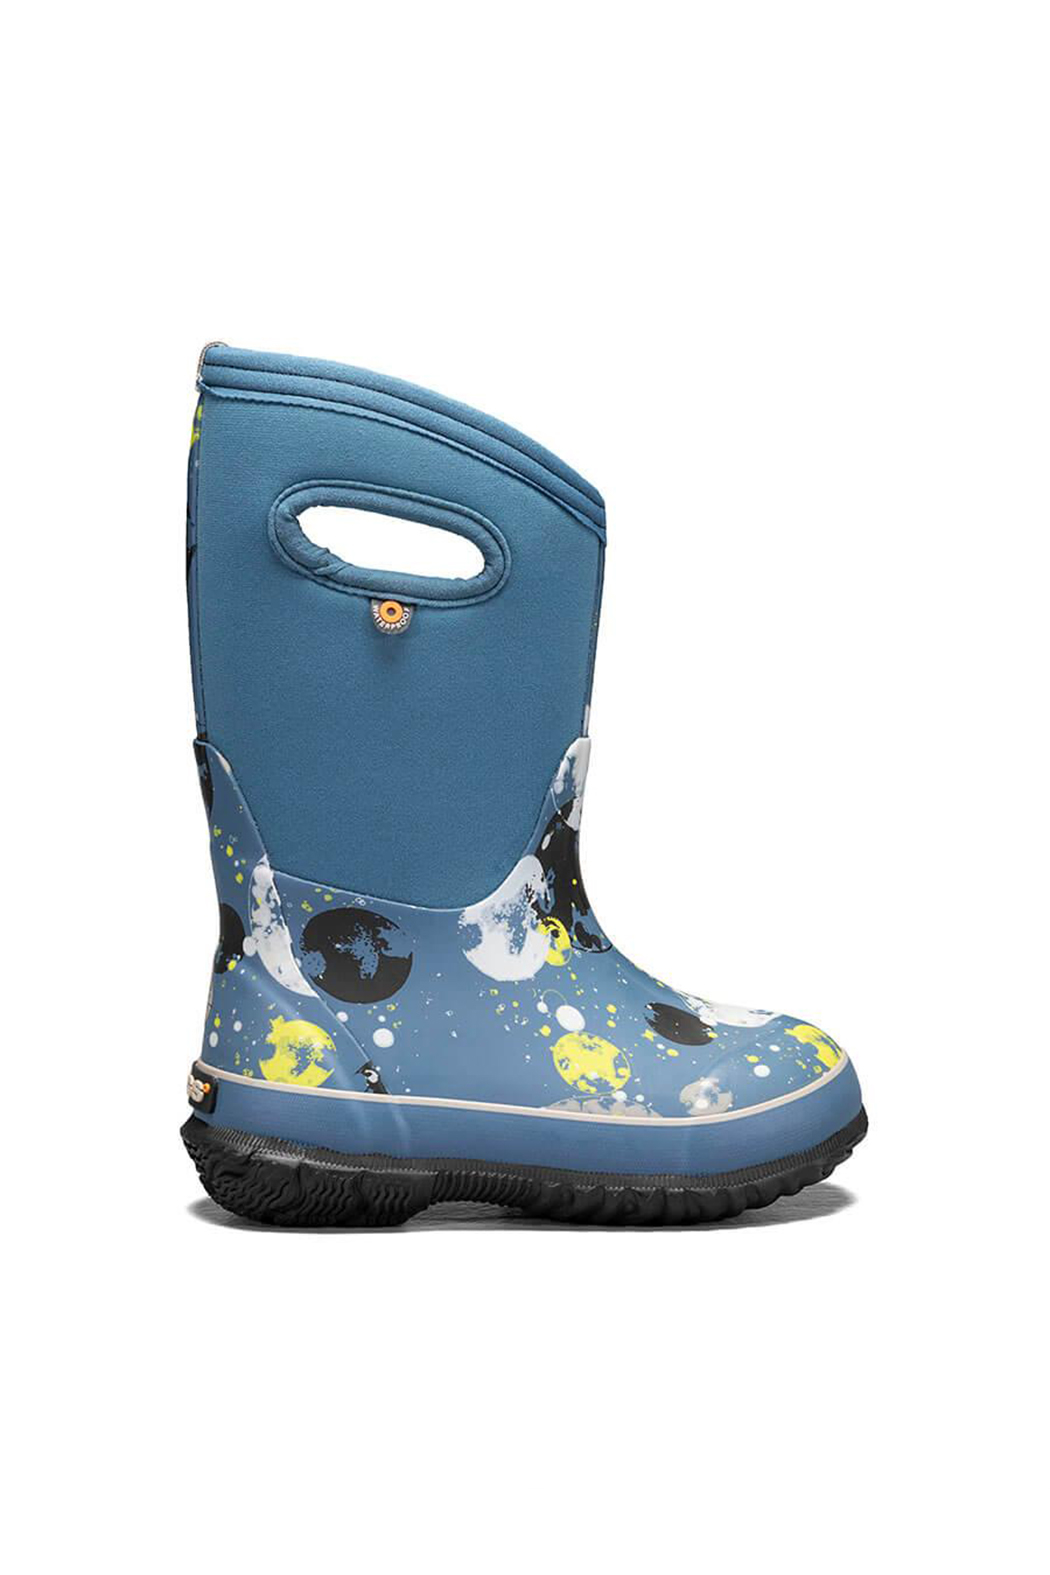 bogs  Classic Waterproof Winter Boots - Moons - Main Image